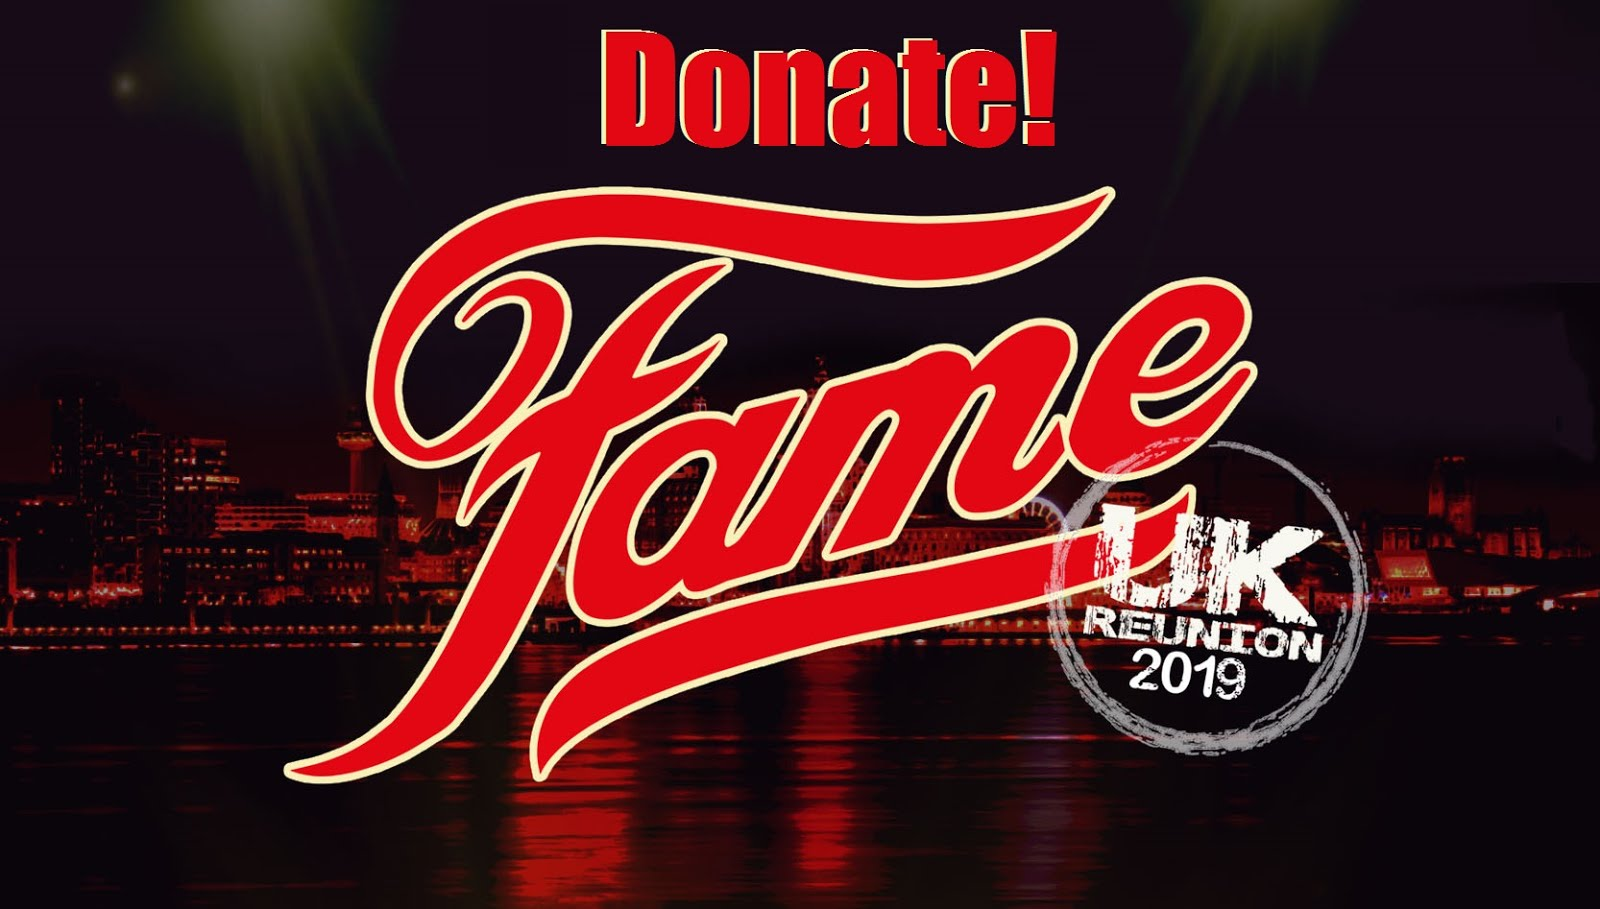 Donate to Fame U.K. Reunion